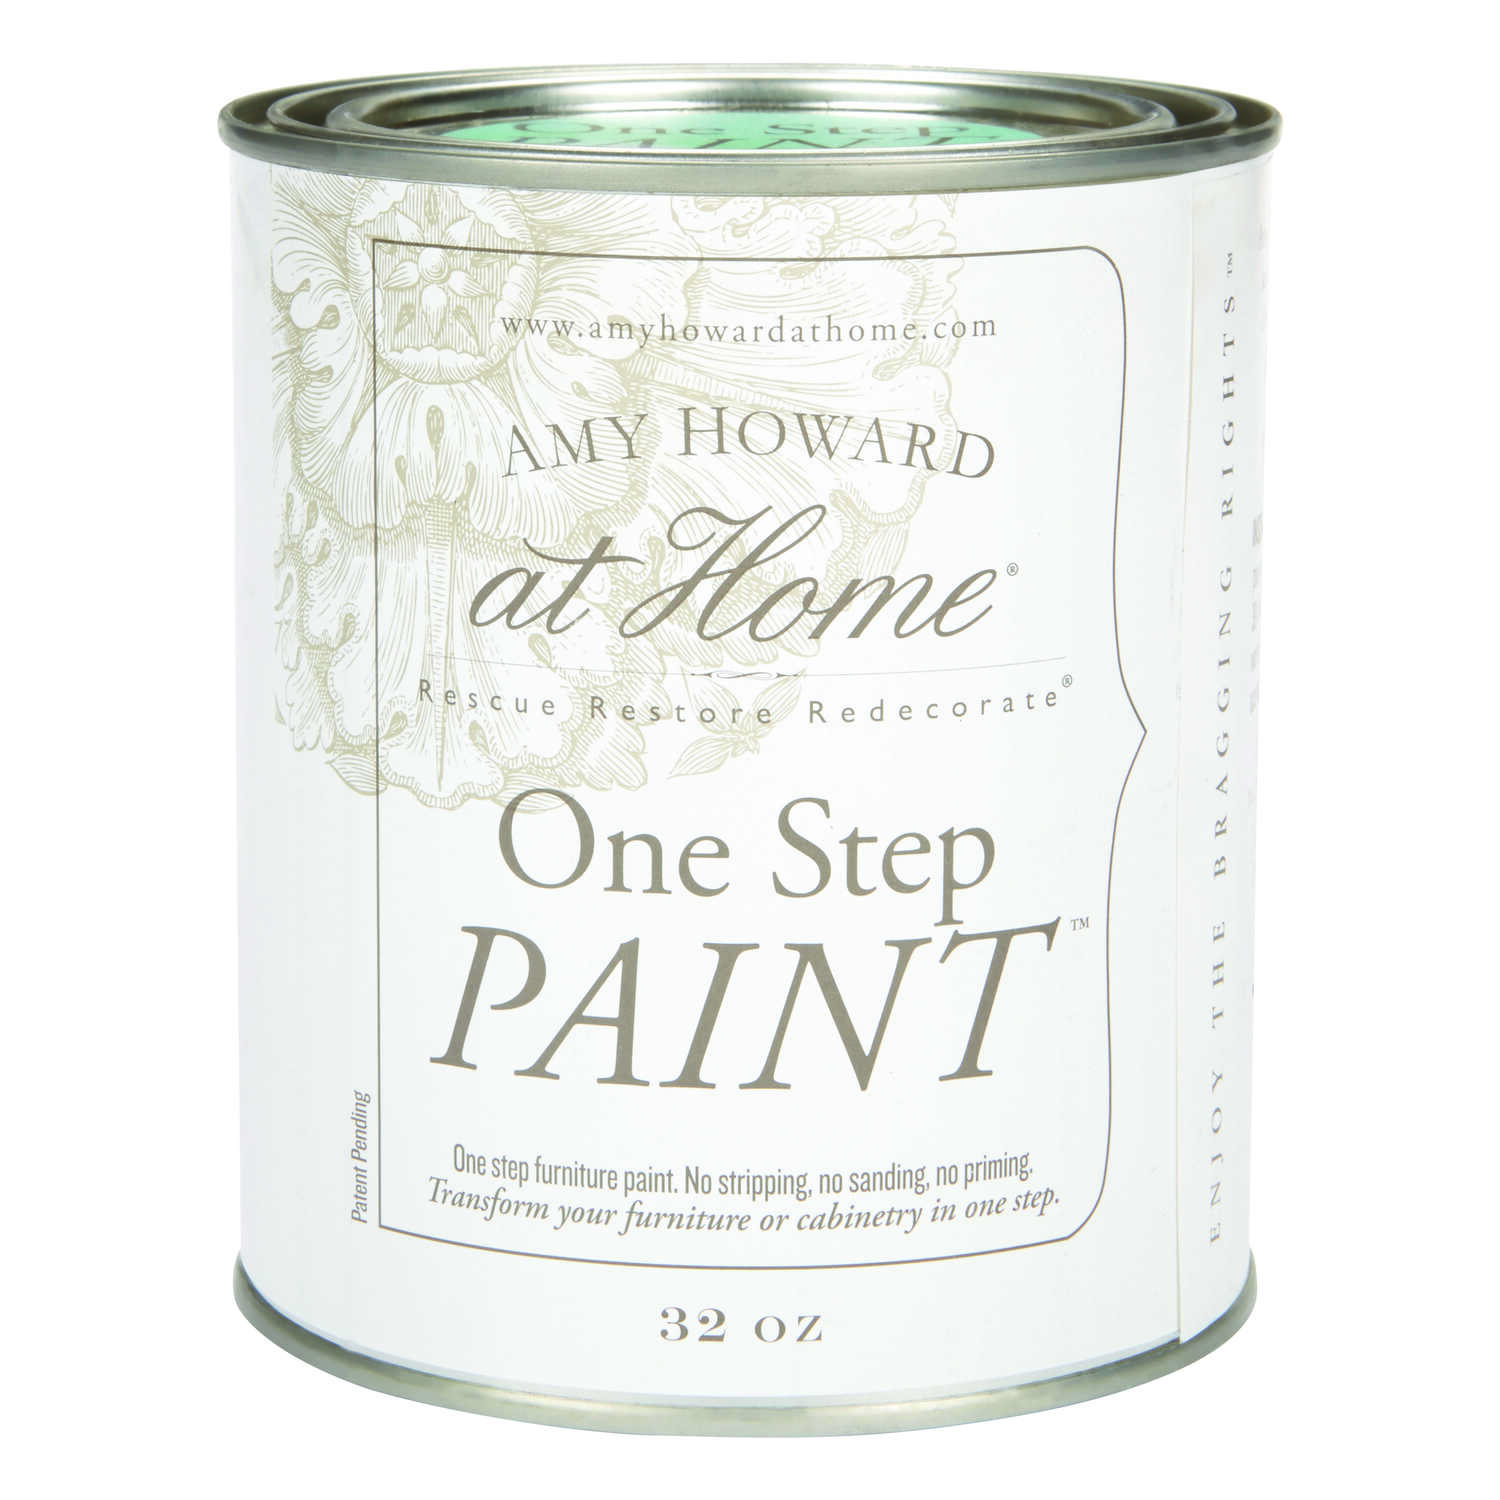 Amy Howard at Home  Barefoot In The Park  Latex  One Step Furniture Paint  32 oz.